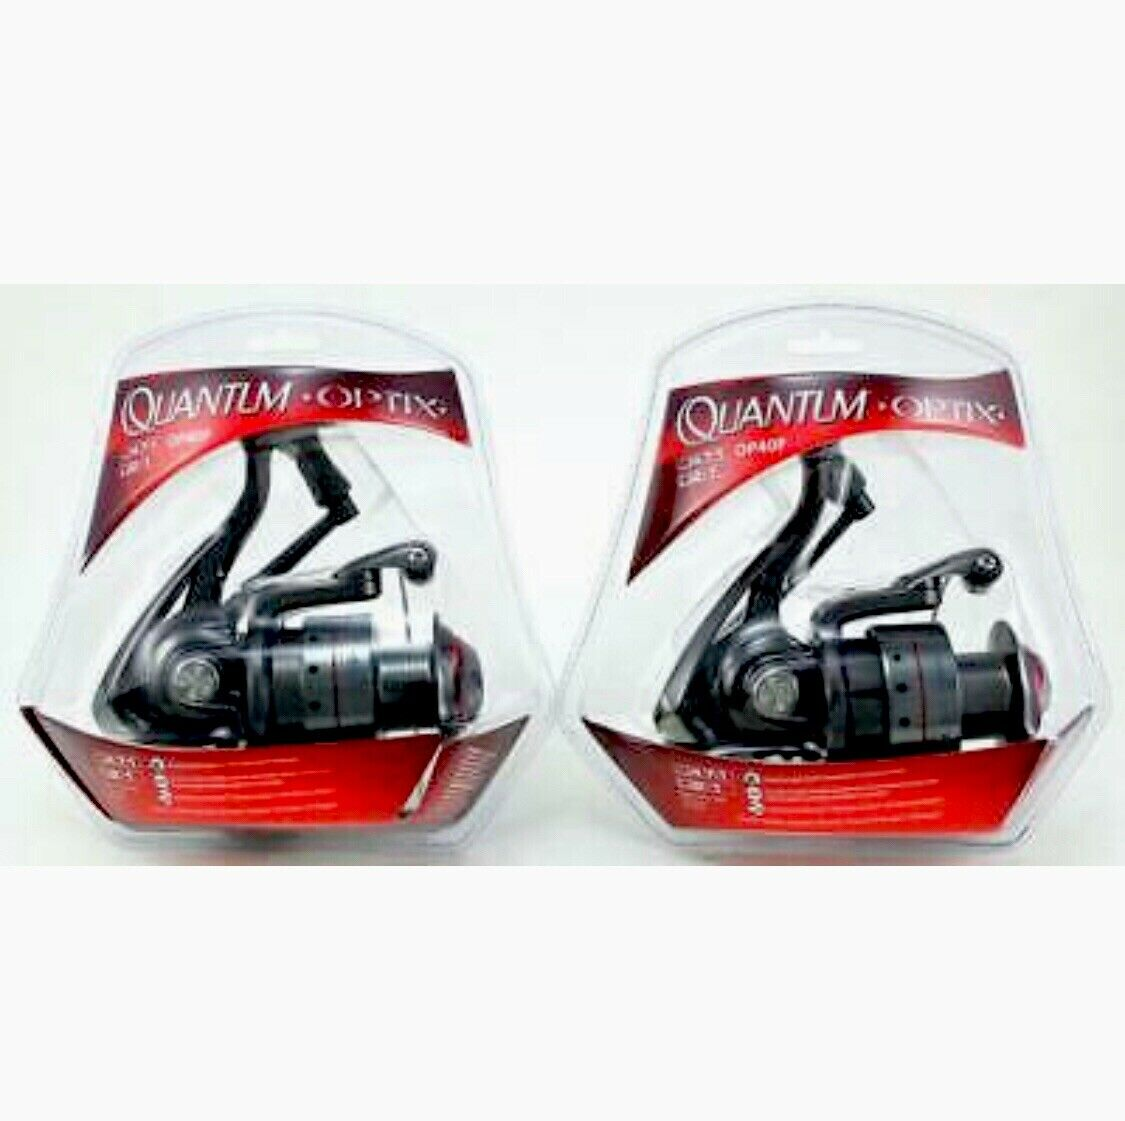 2017 Quantum Optix 40 Model Op40f Spinning Reel For Sale Online Ebay